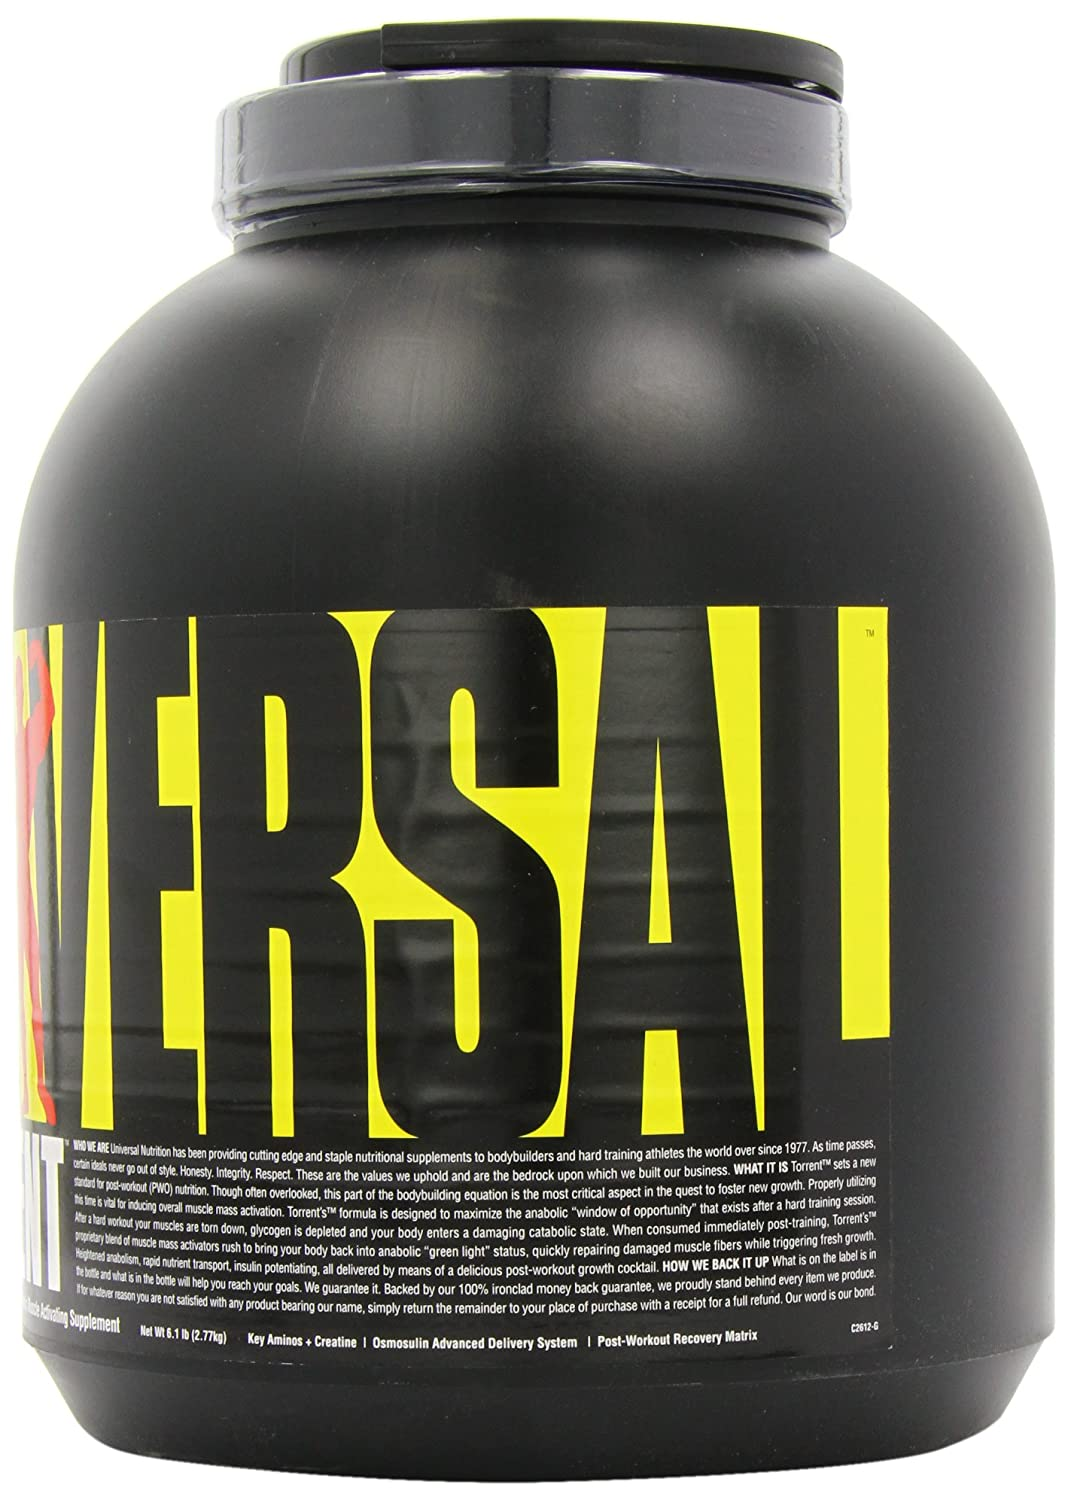 Torrent Post Workout Recovery Supplement 52g Carbs, 20g Protein and 1.5g Fats- Cherry Berry – 6